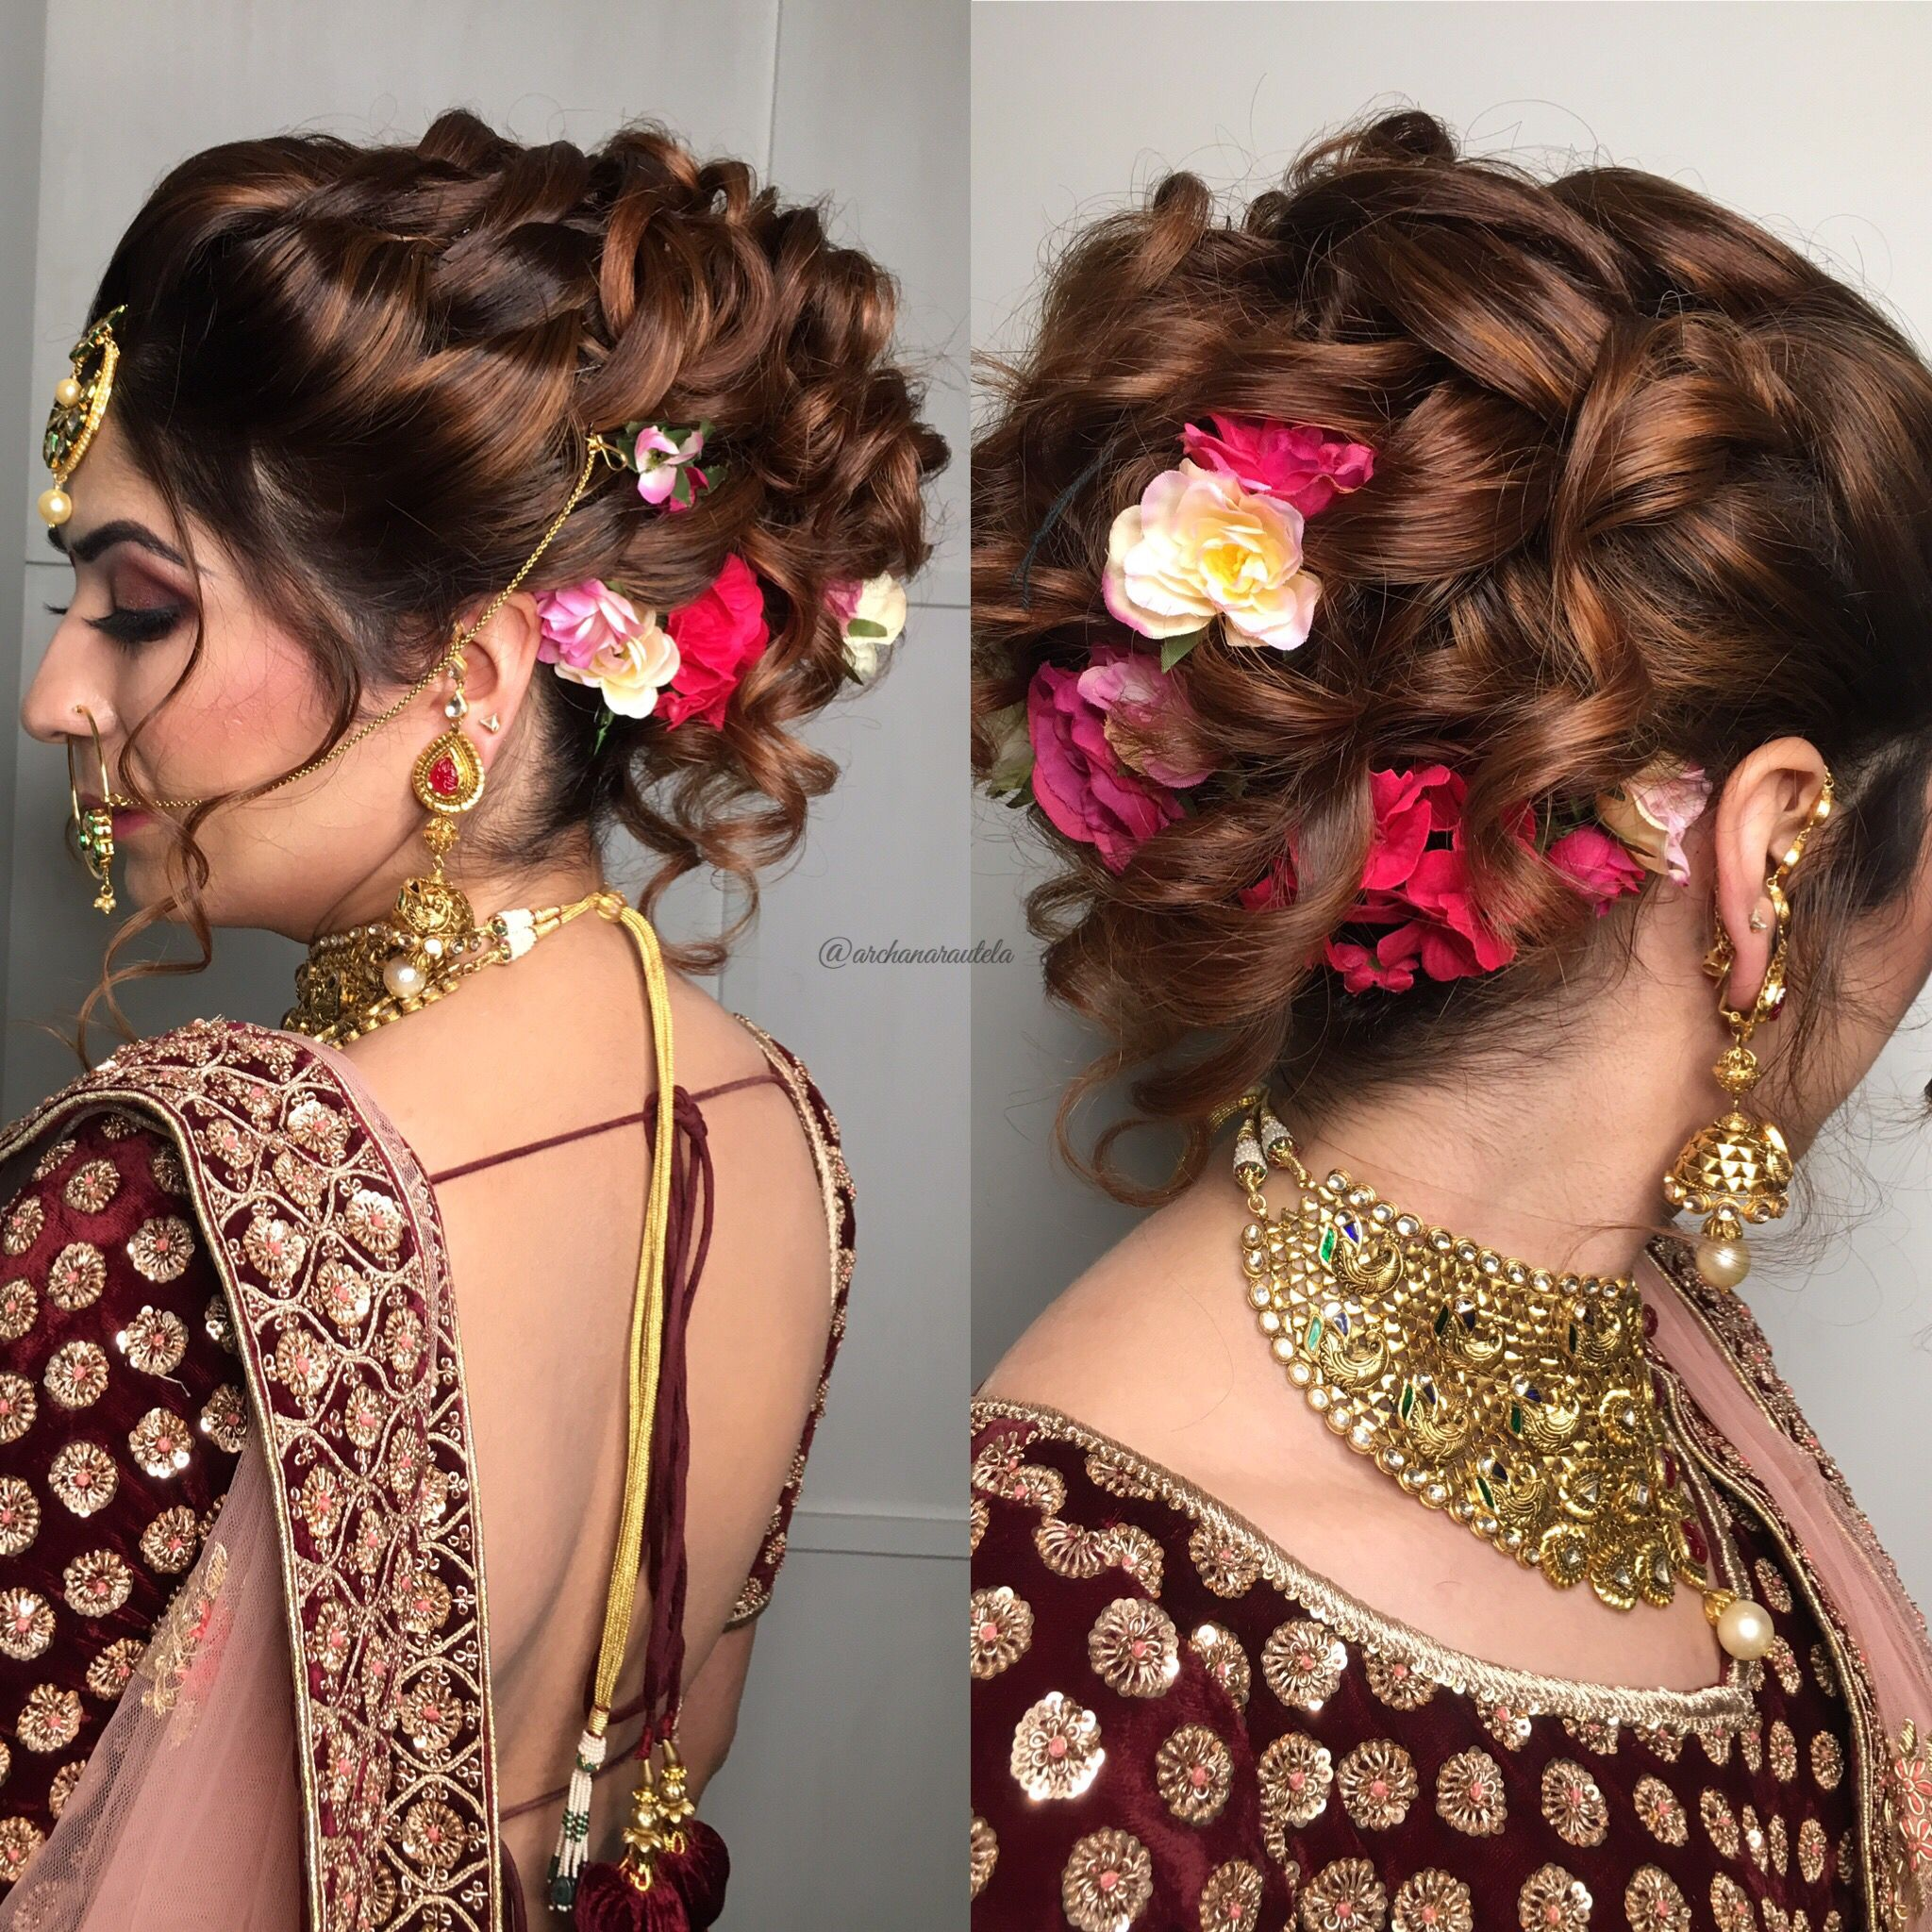 Wedding Hair Inspiration Accessorise Your Hair With